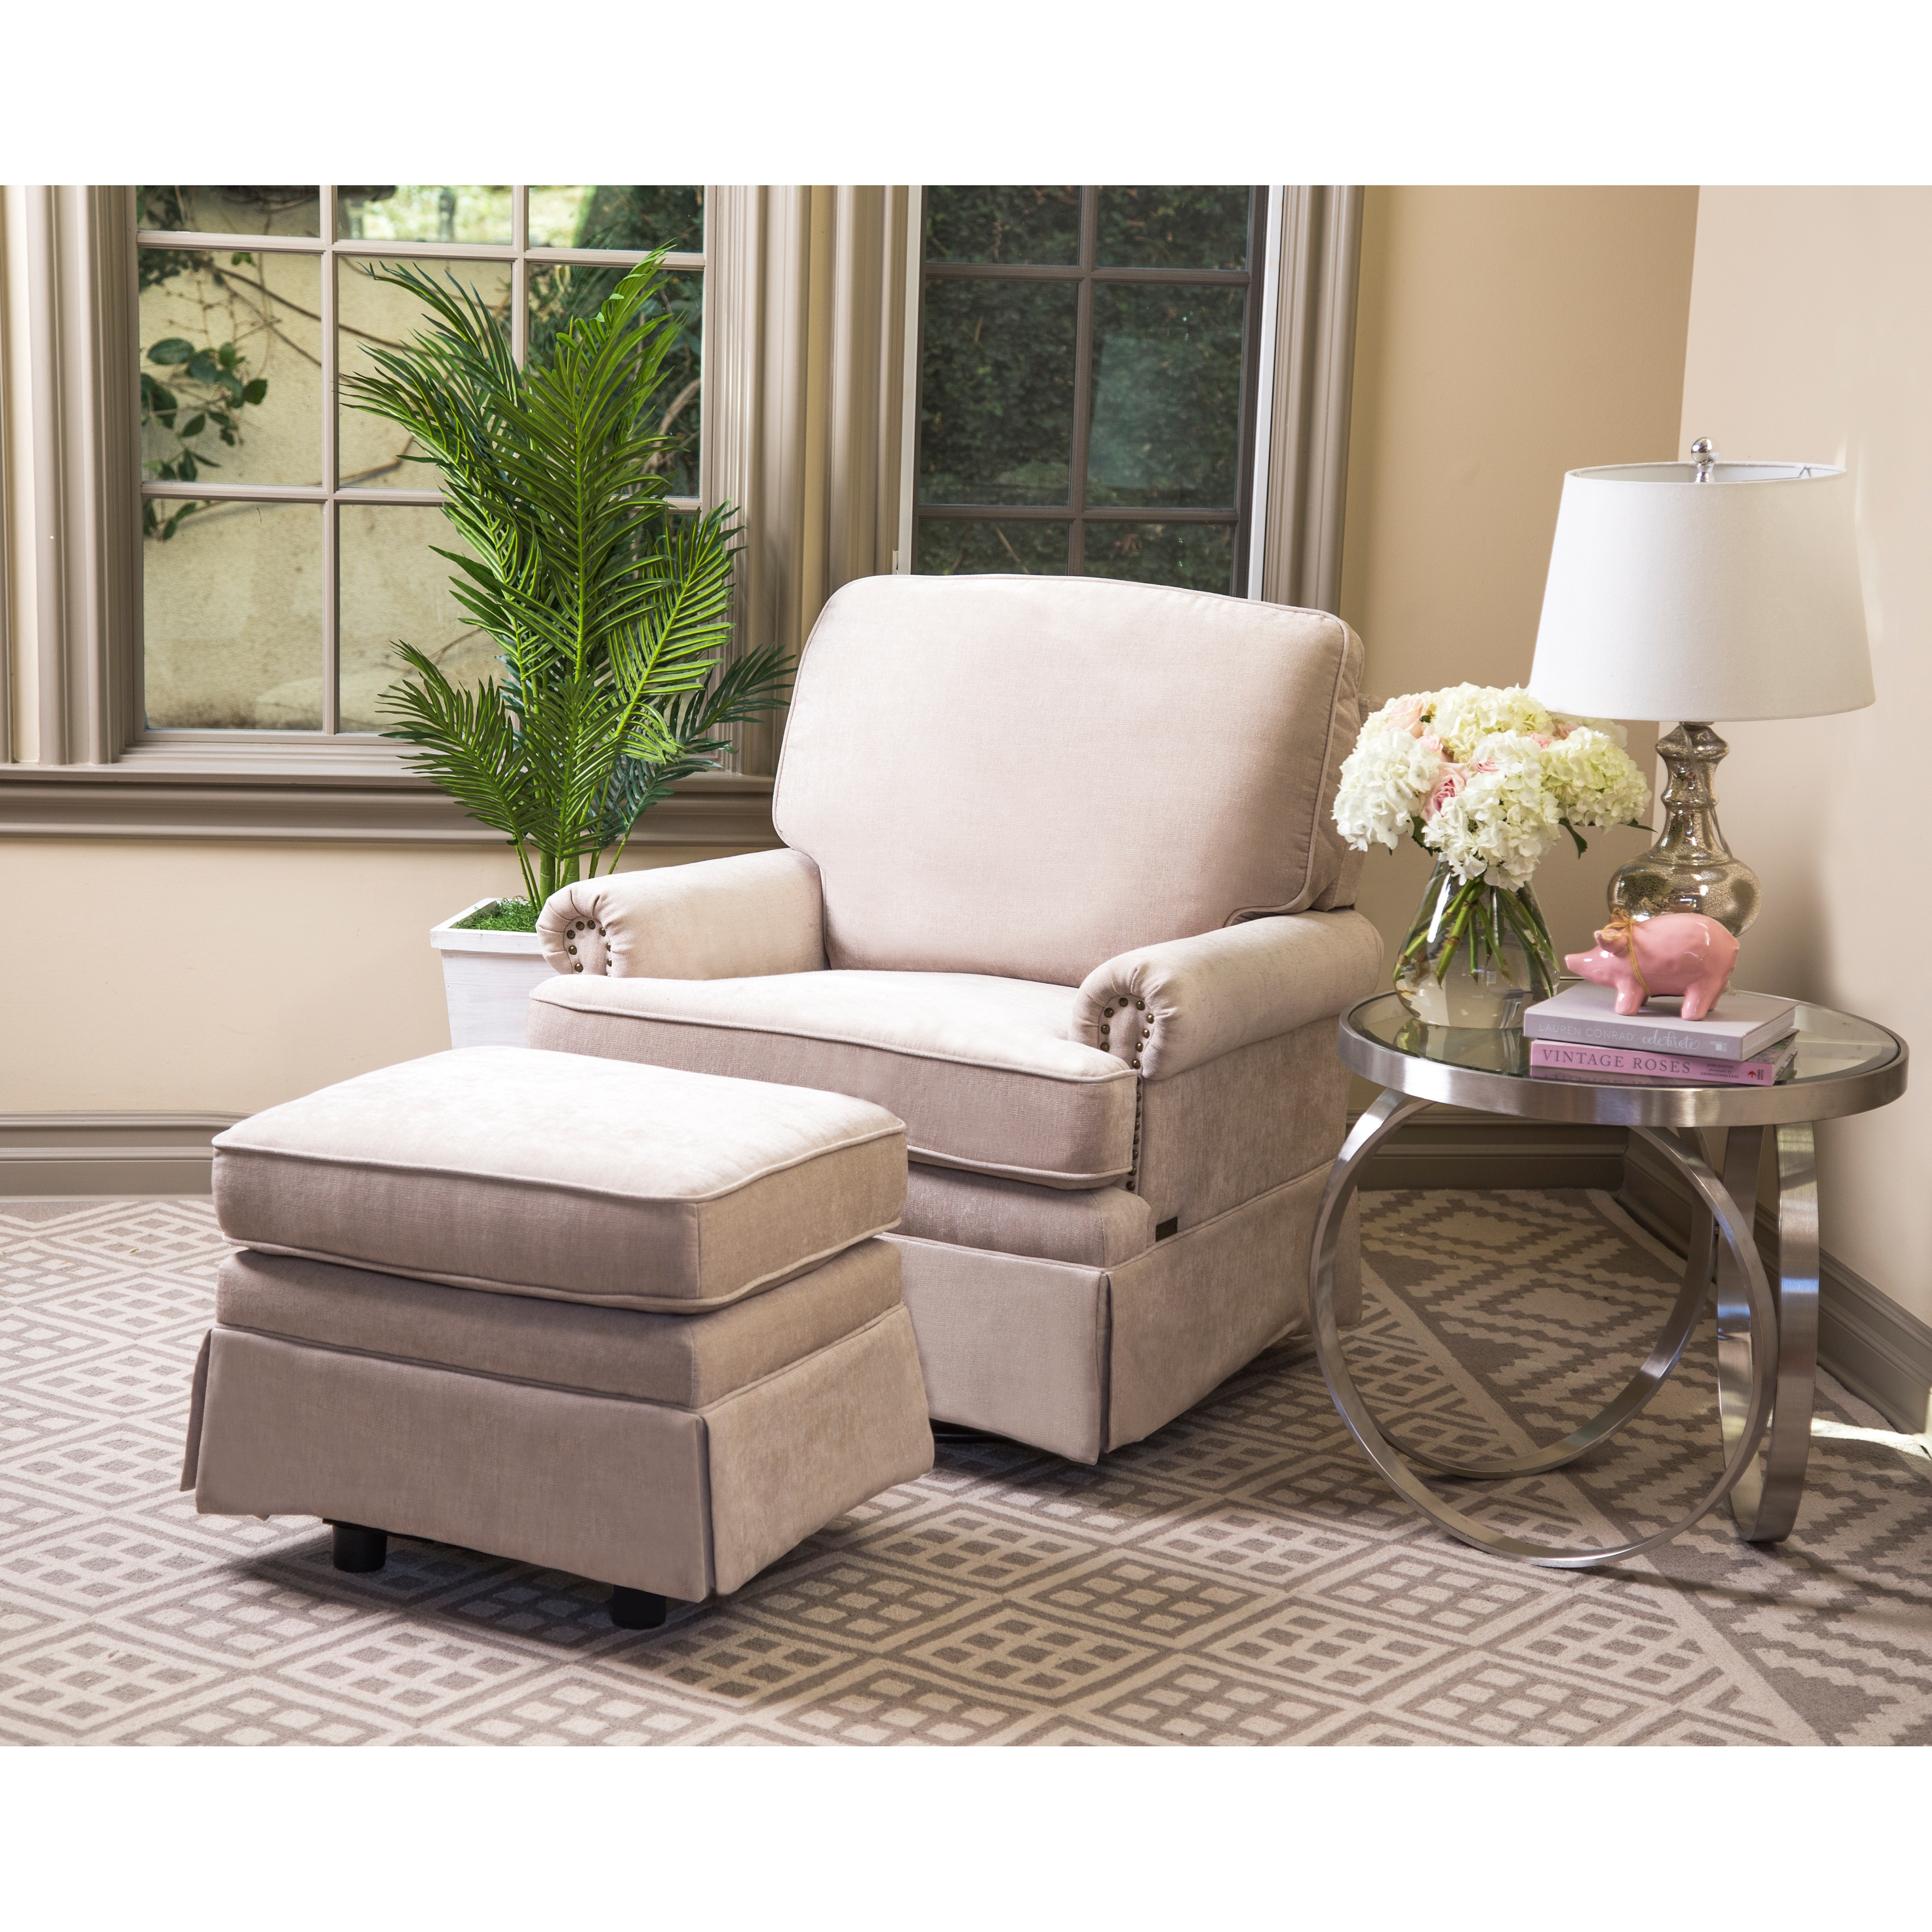 Superbe Shop Abbyson Chloe Cream Hardwood/Steel/Fabric Swivel Glider Chair And  Ottoman   On Sale   Free Shipping Today   Overstock.com   12654015